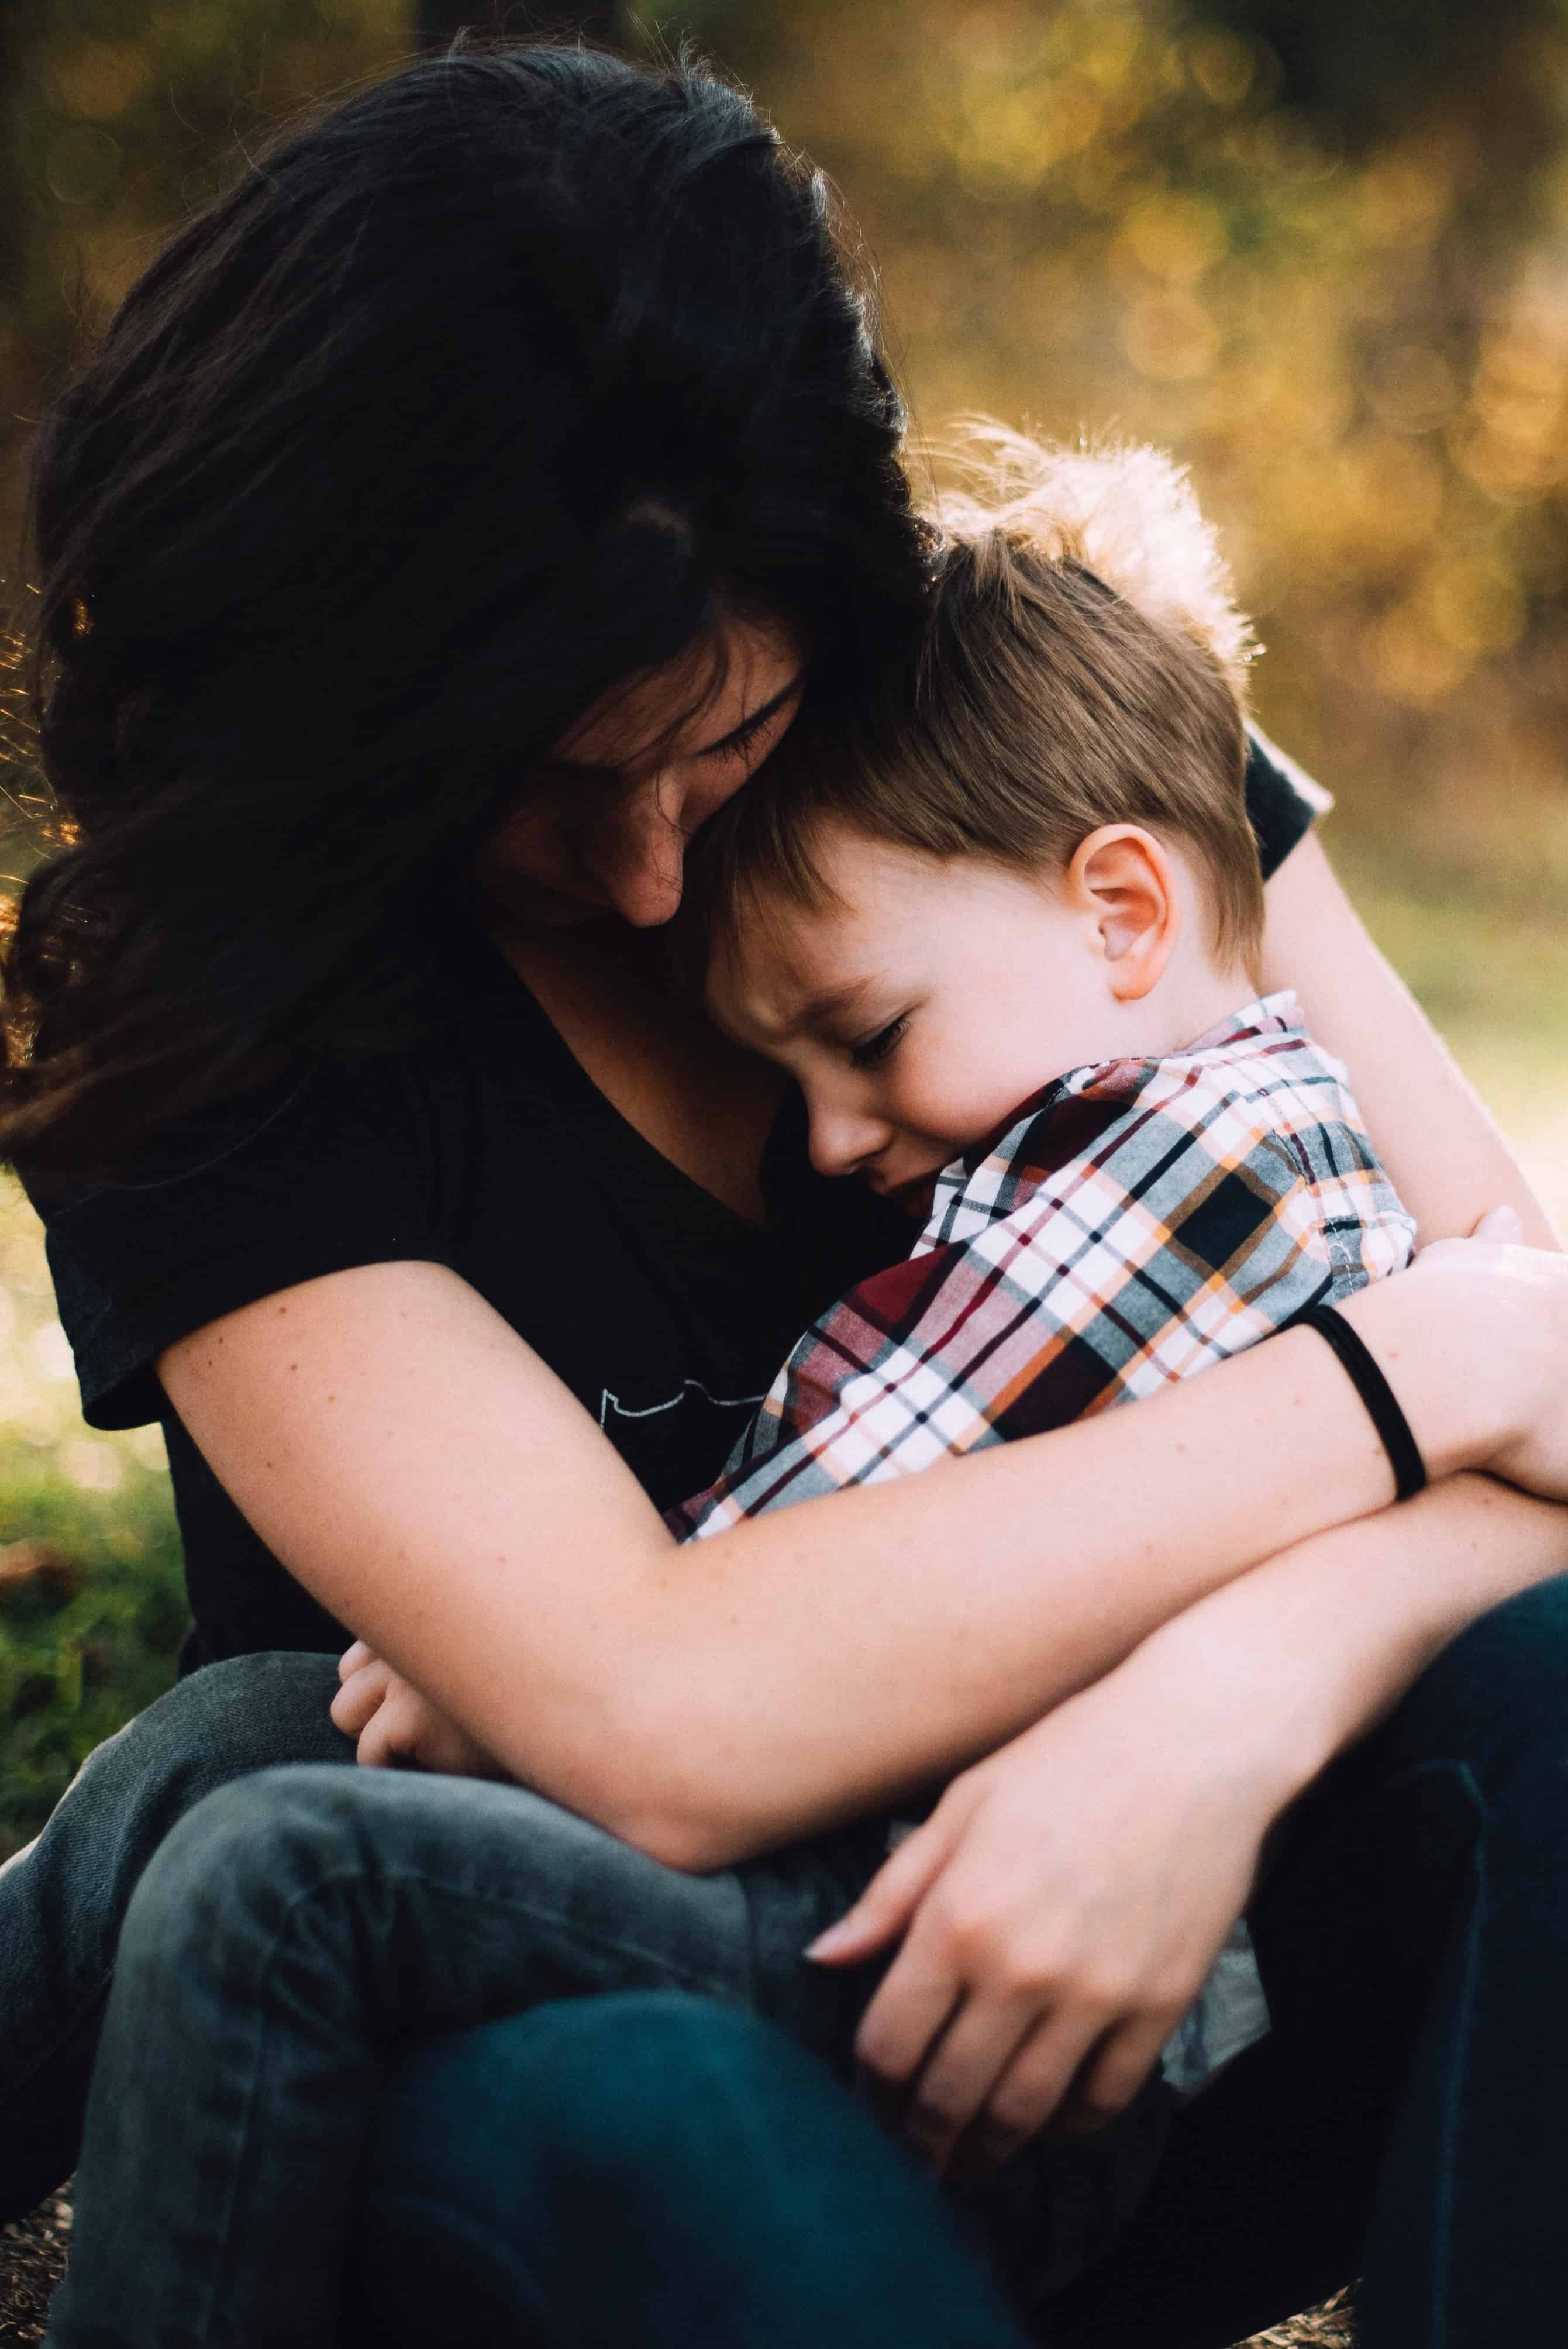 20 Easy Ways to Reconnect with Your Child